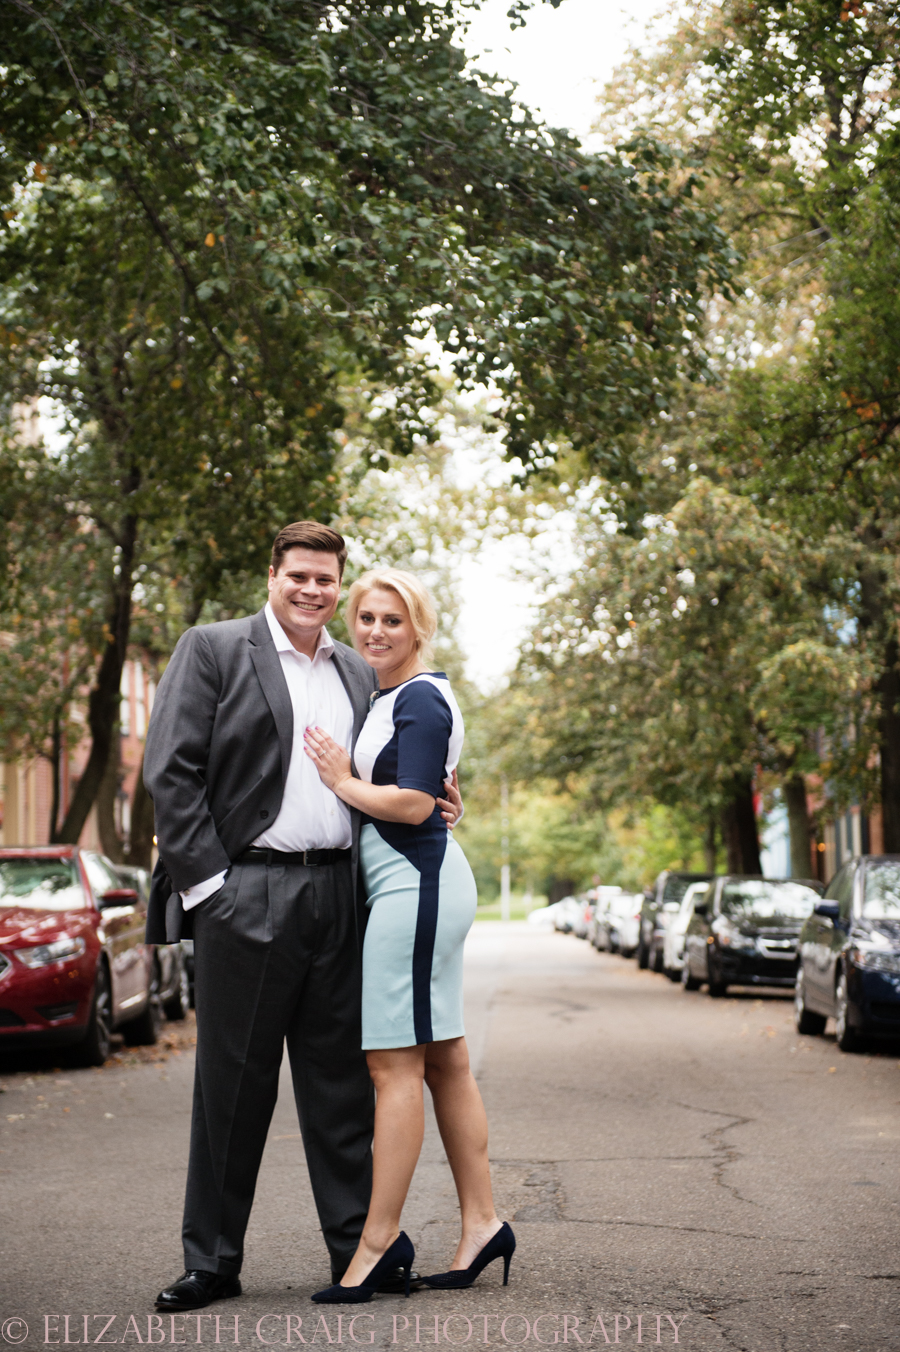 Pittsburgh North Side Engagement Photography | Elizabeth Craig Photography-020